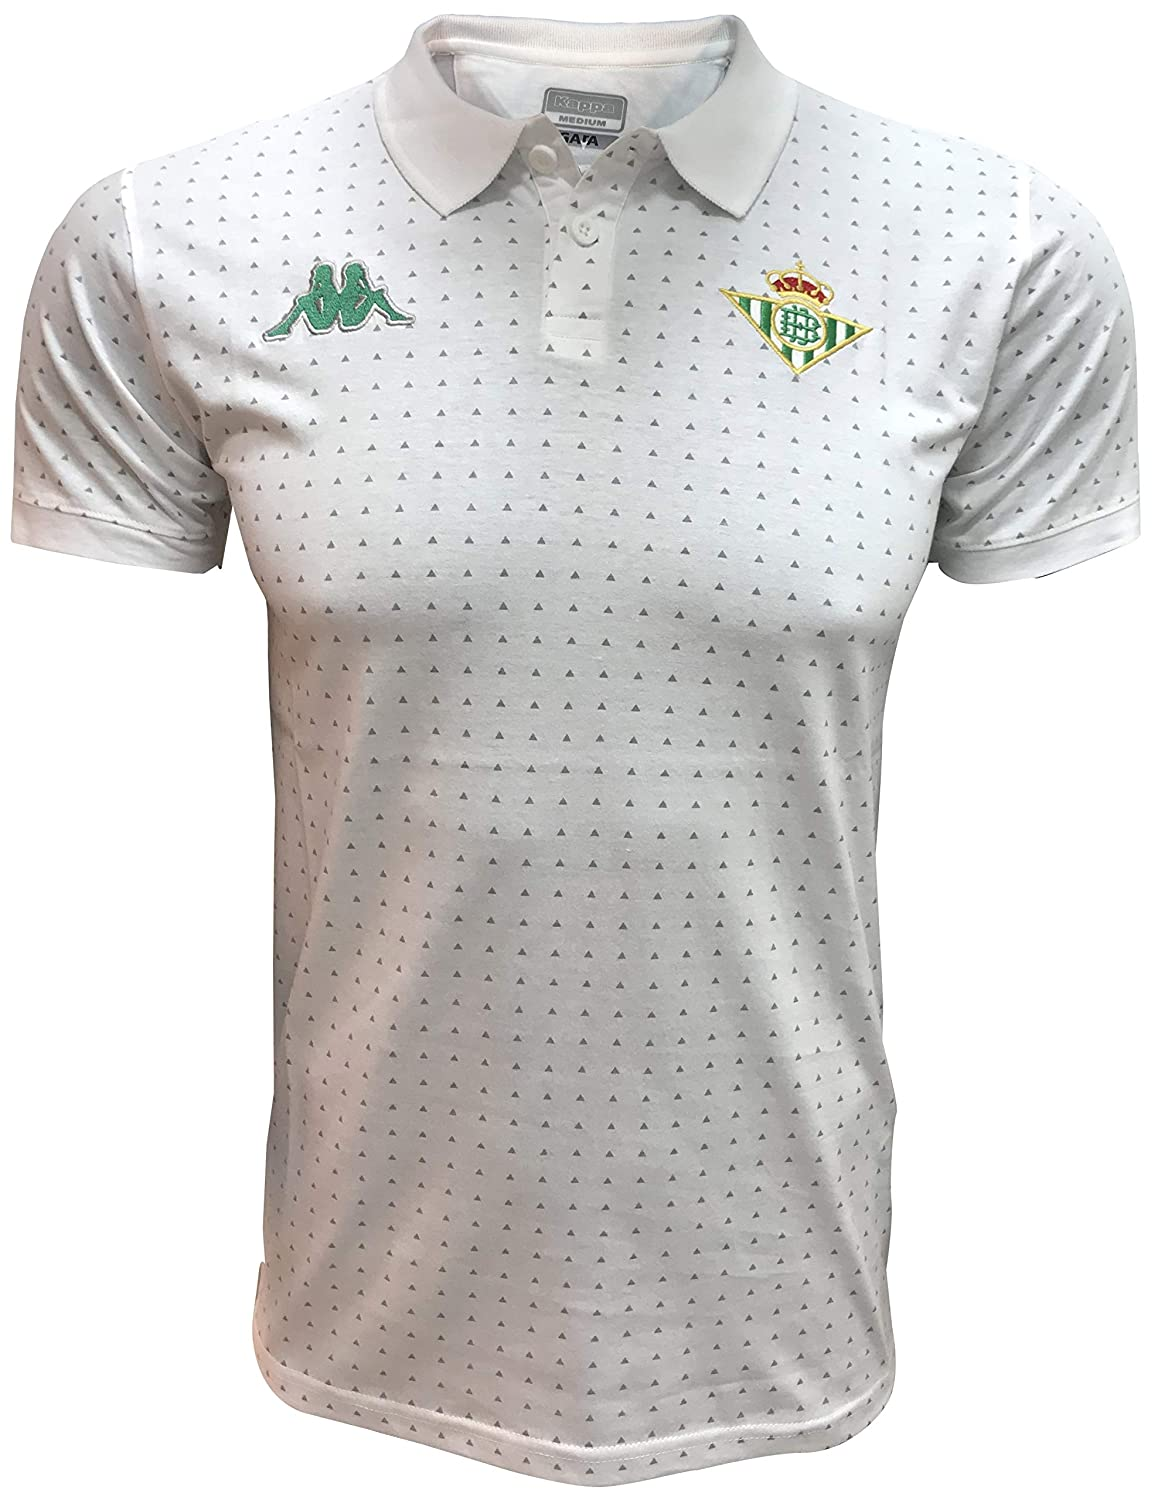 Kappa Real Betis 2018-2019 Talla L, Color Blanco, Verde: Amazon.es ...